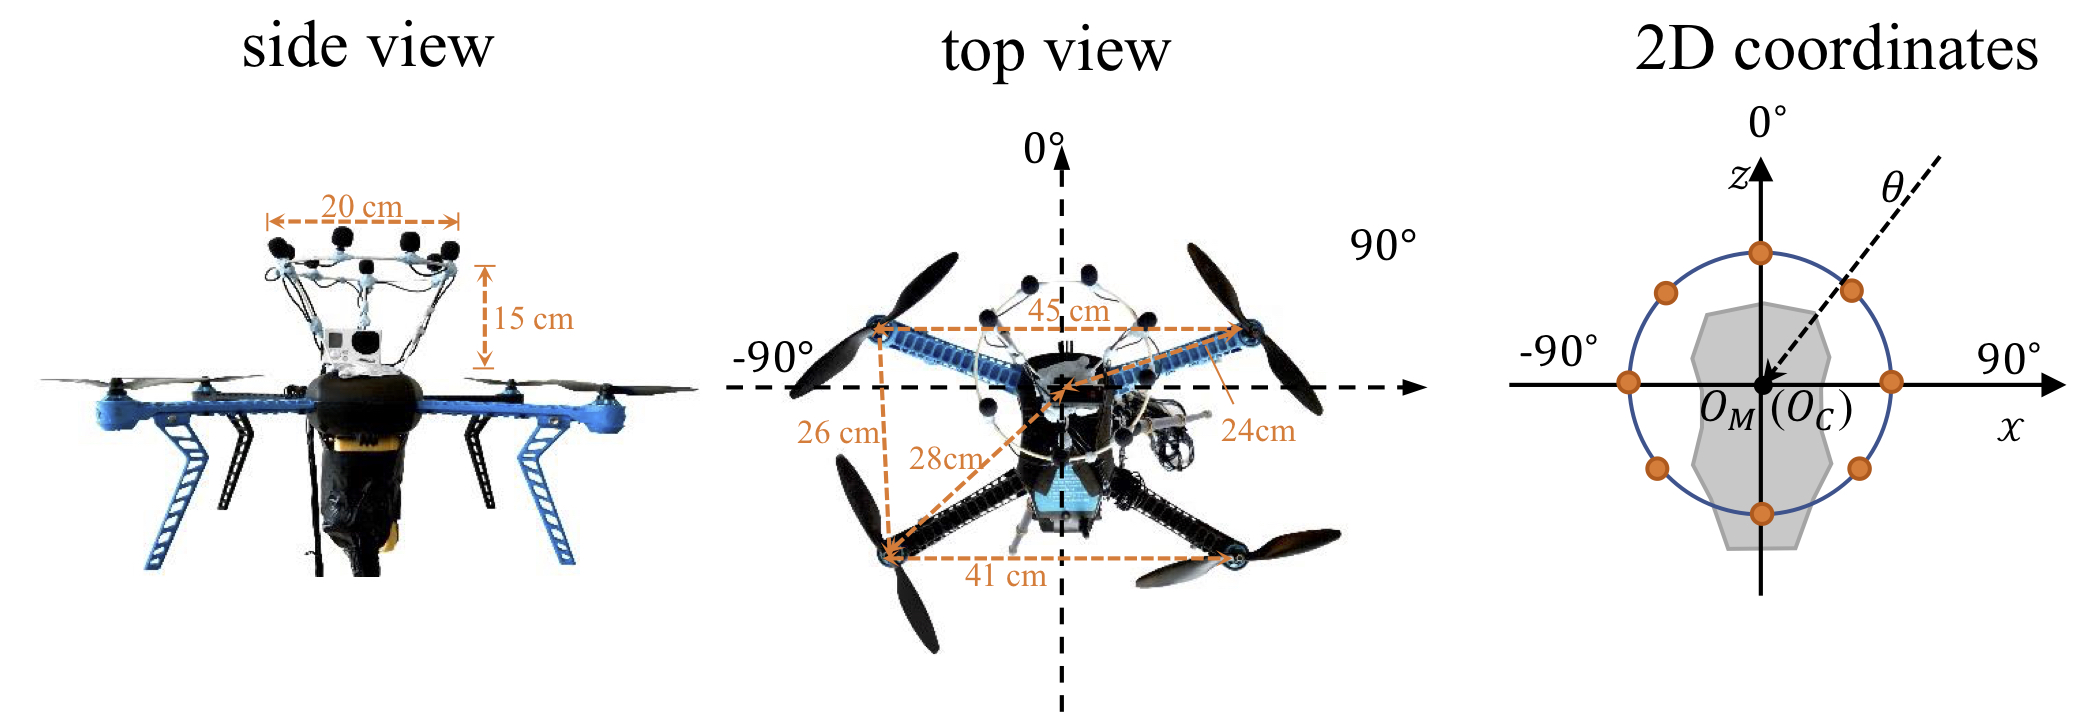 Audio-visual sensing from a quadcopter: dataset and